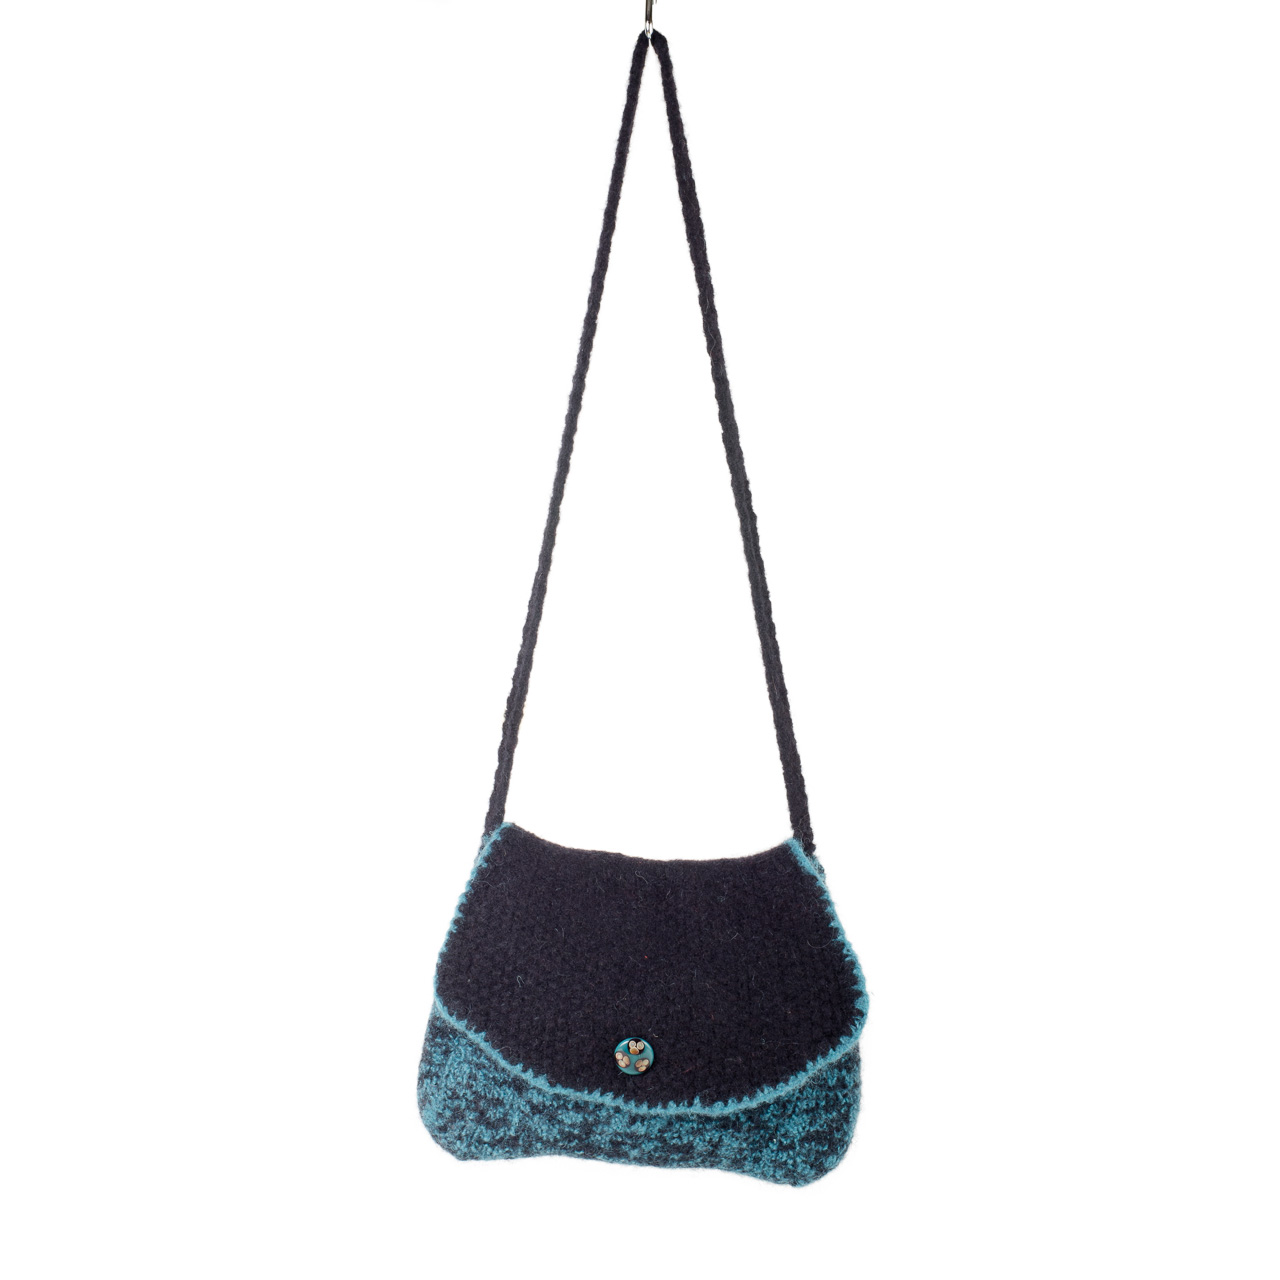 Elegant Black and Teal Felted Shoulder Bag